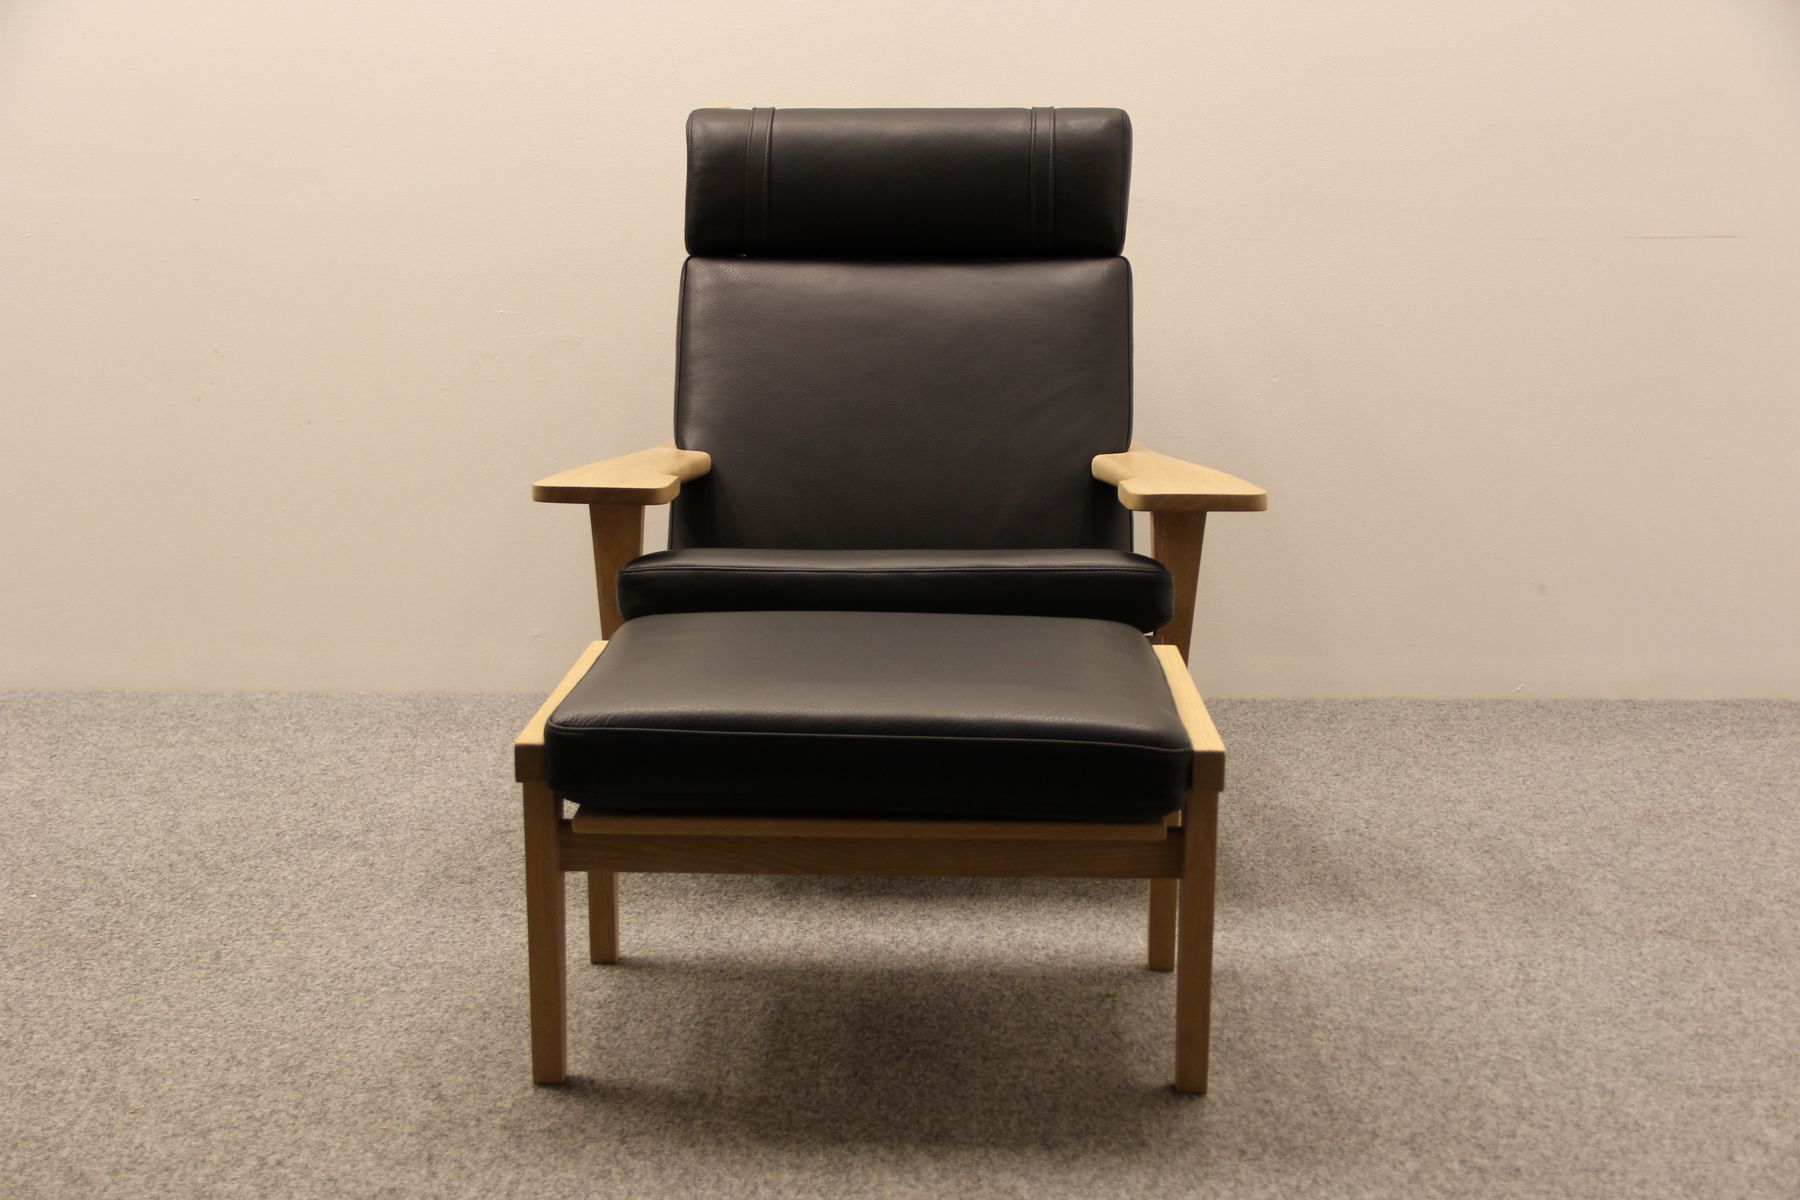 Danish Oak and Black Leather Easy Chair and Ottoman from Getama